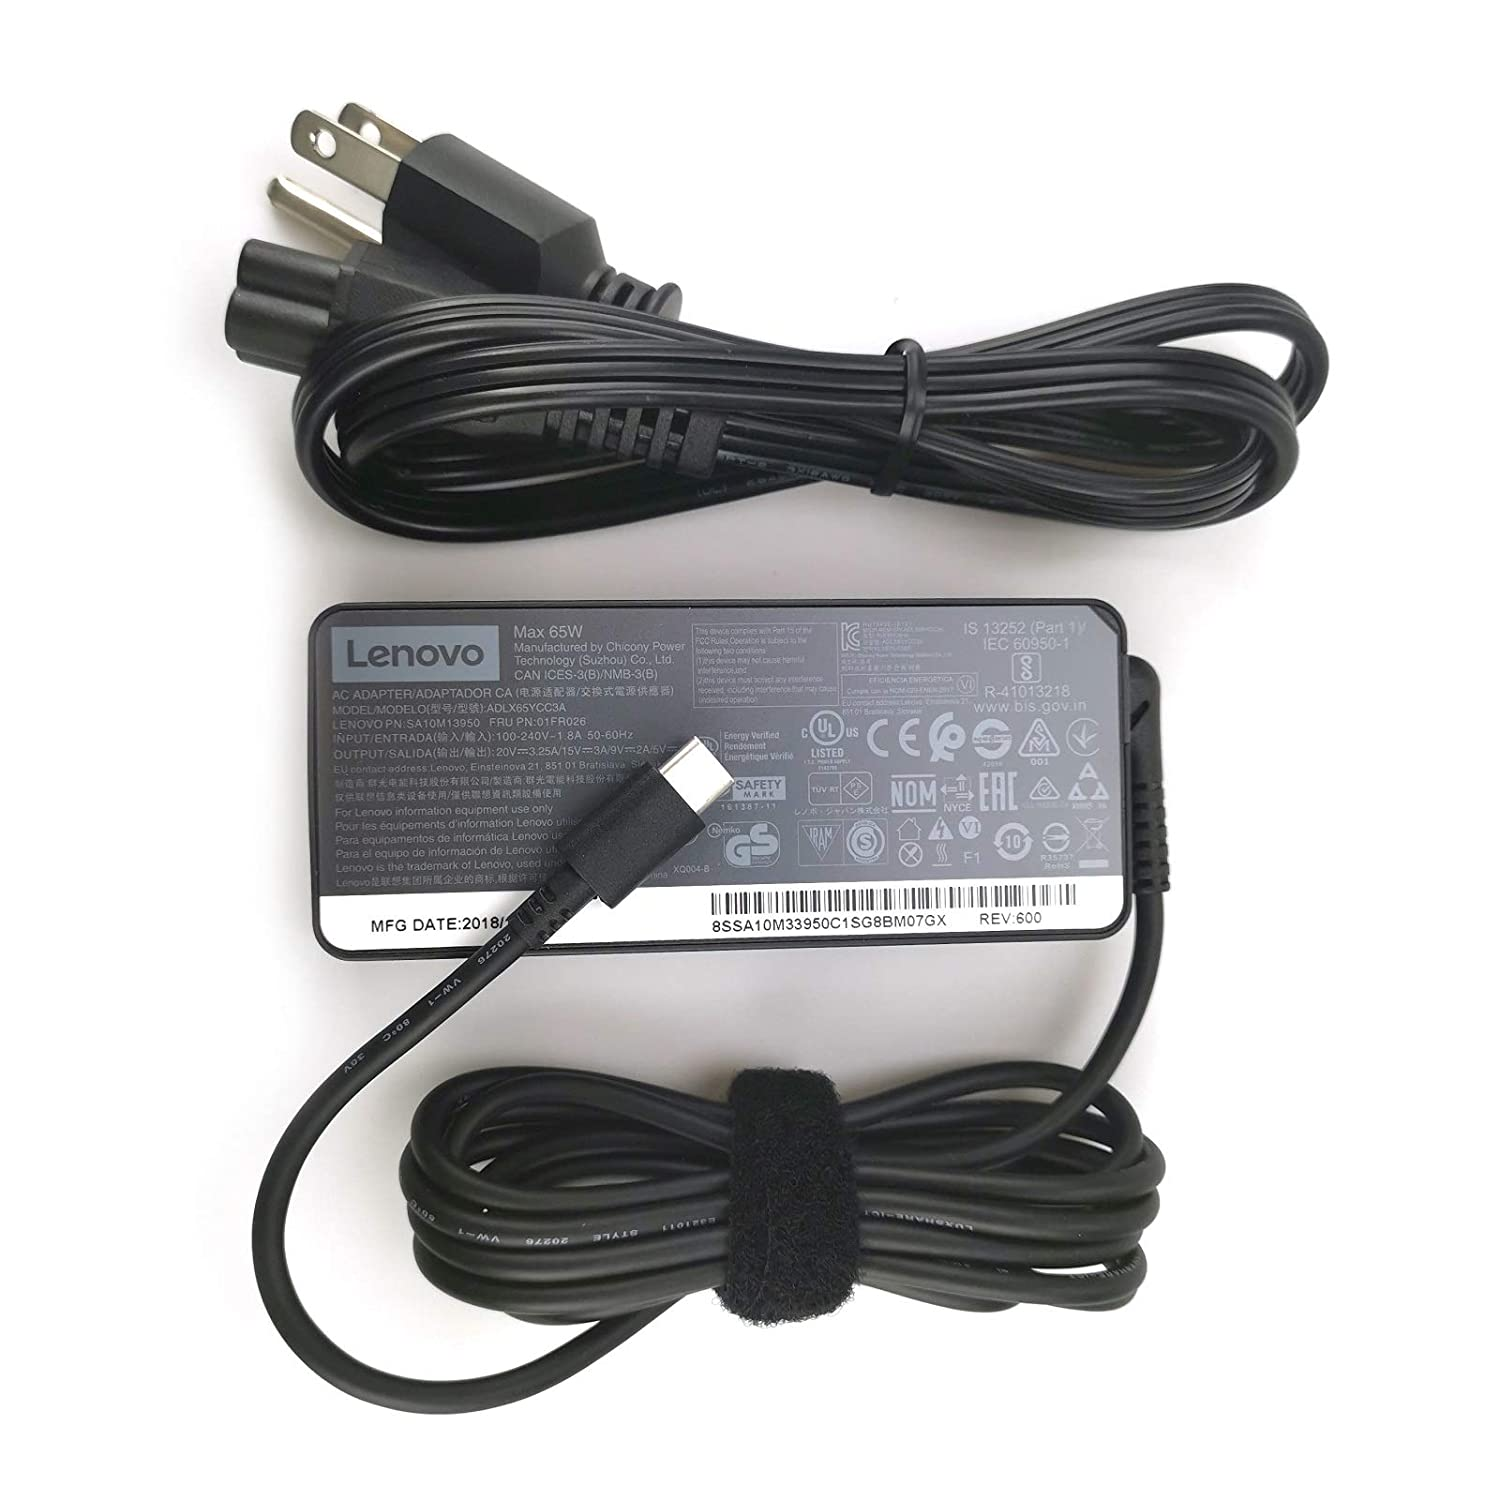 New Laptop Charger 65W watt USB Type C(USB-C) AC Power Adapter for Lenovo ThinkPad Yoga Flex Miix